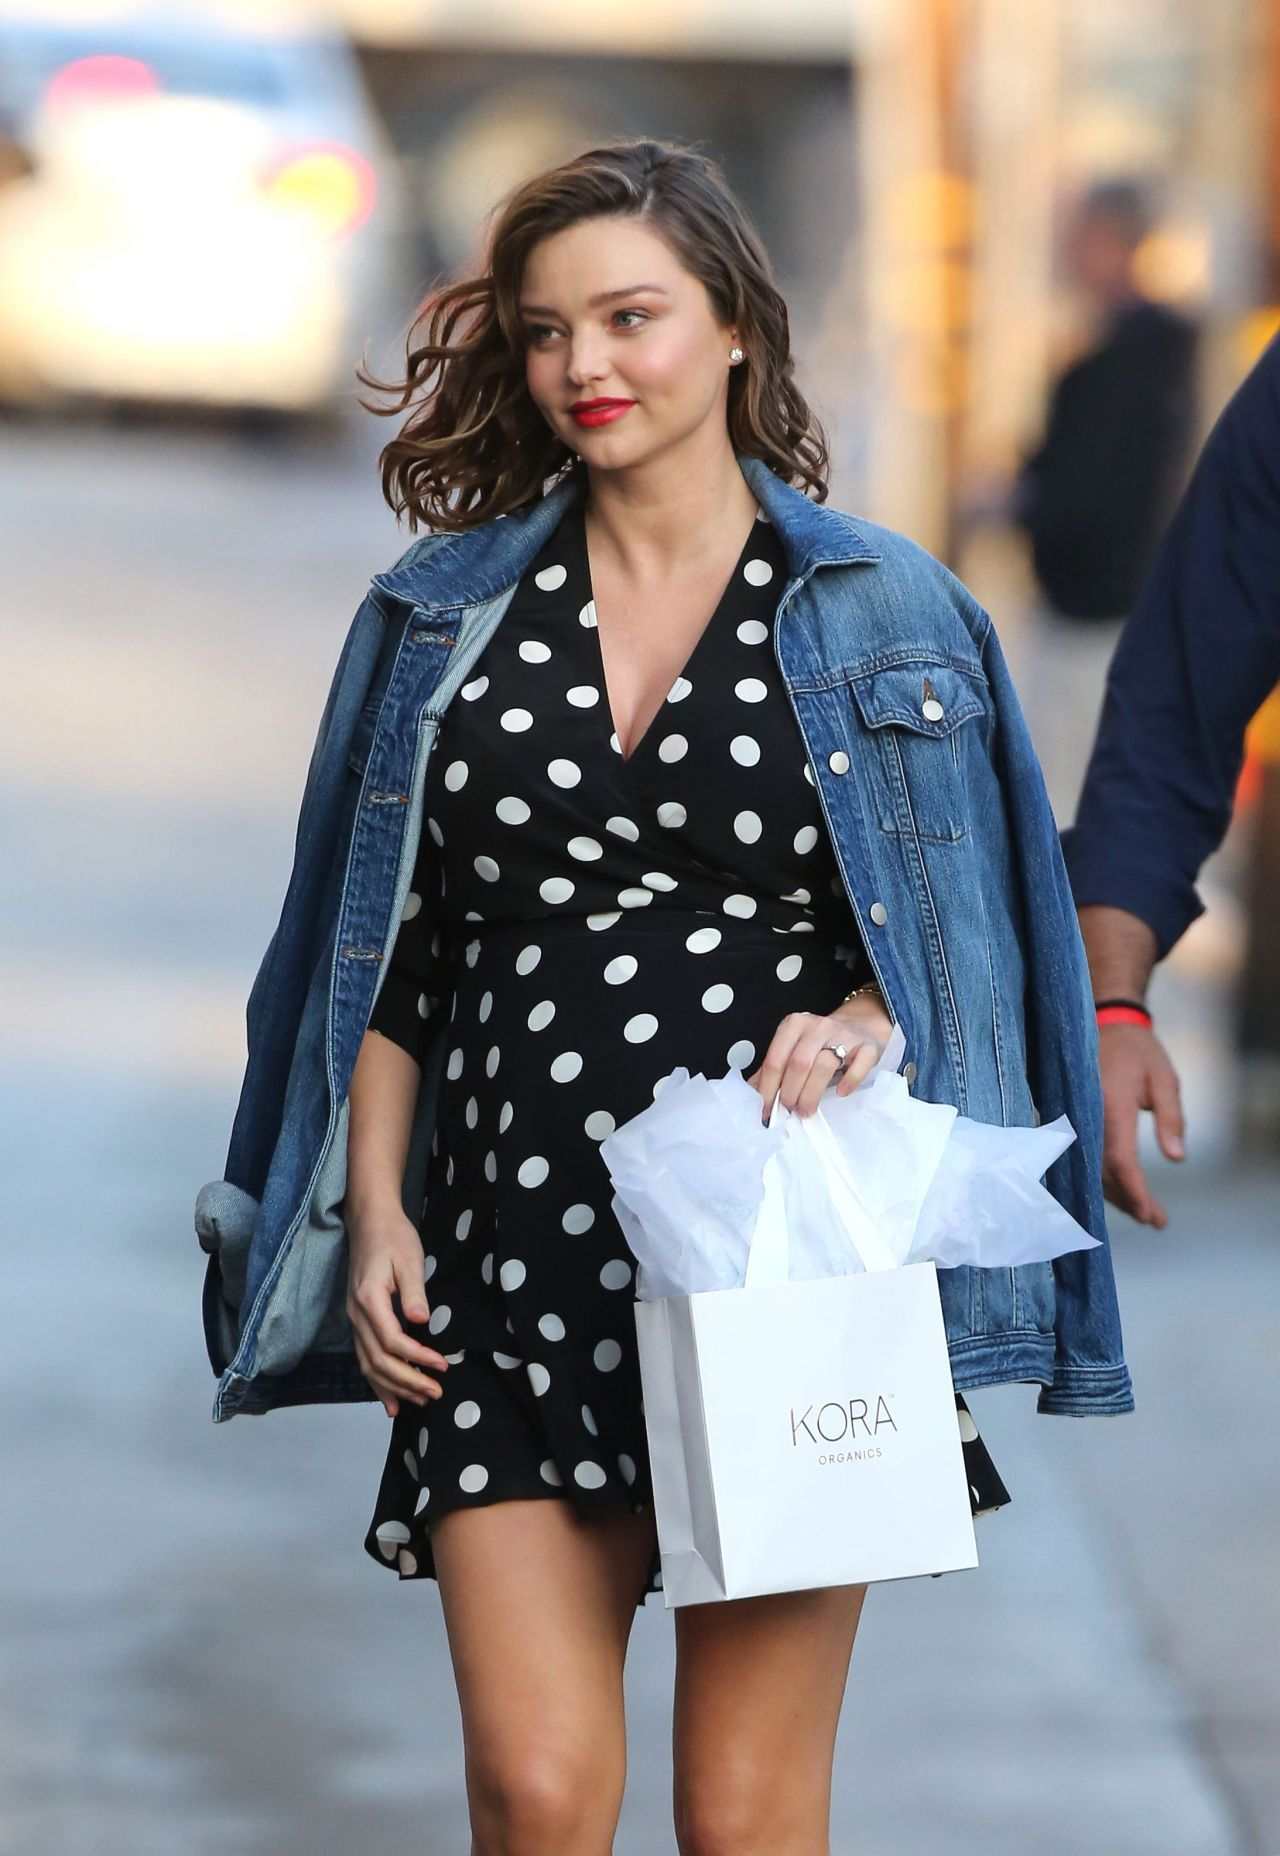 Miranda Kerr Arriving To Appear On Jimmy Kimmel Live In